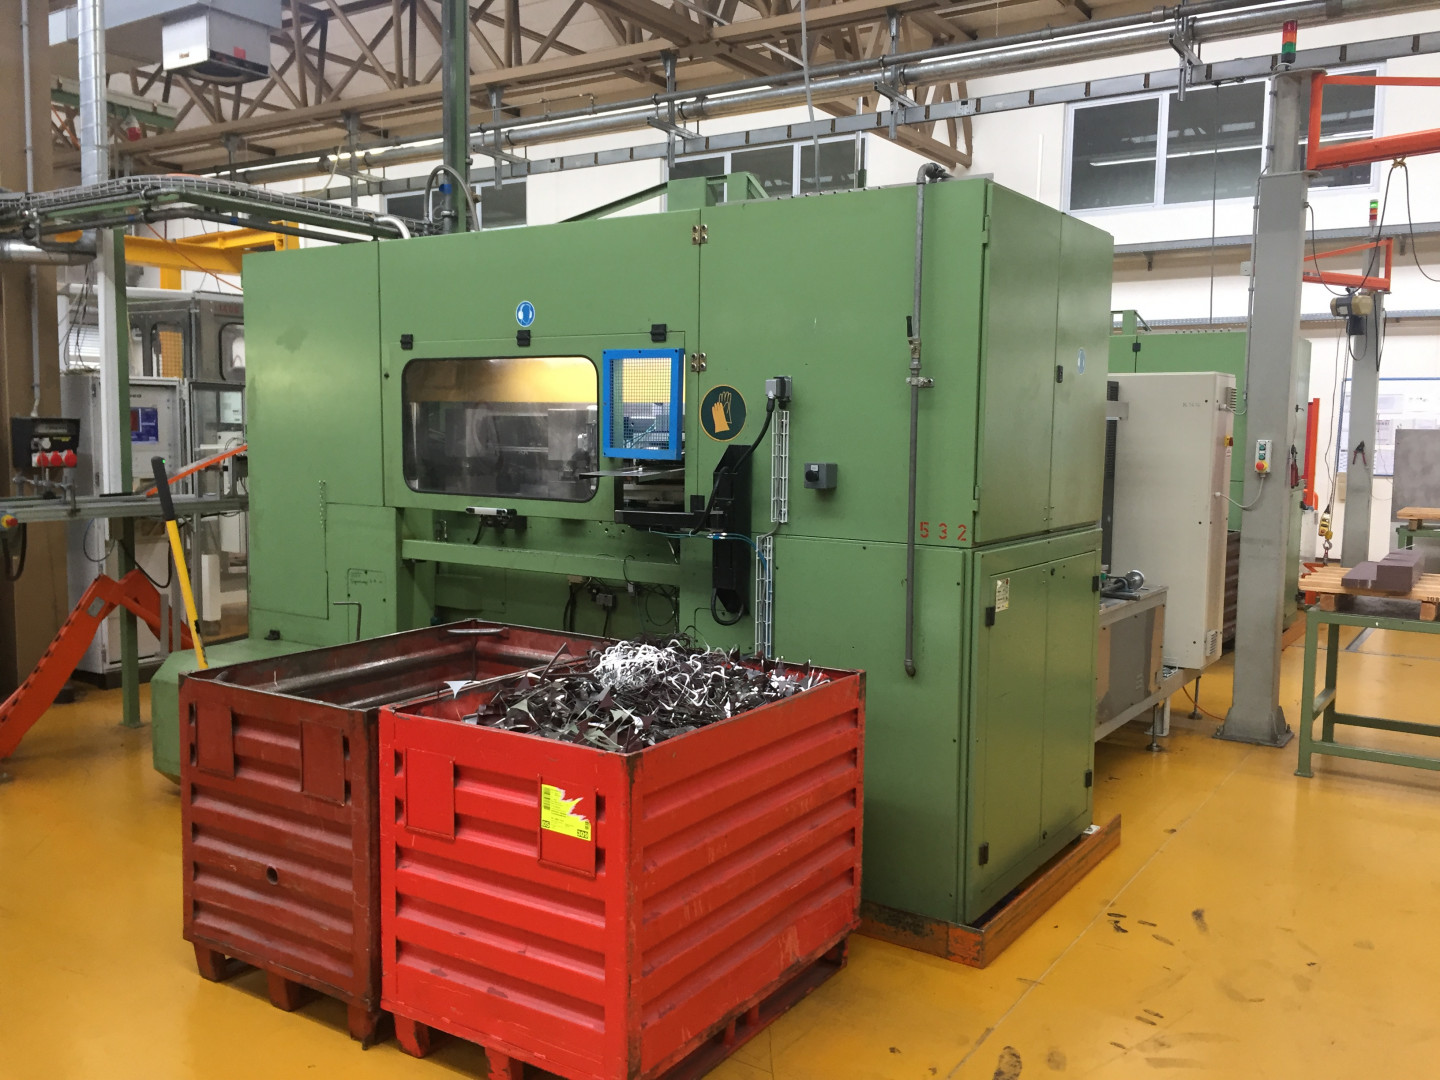 Invernizzi 4 CT 60-75 transfer press